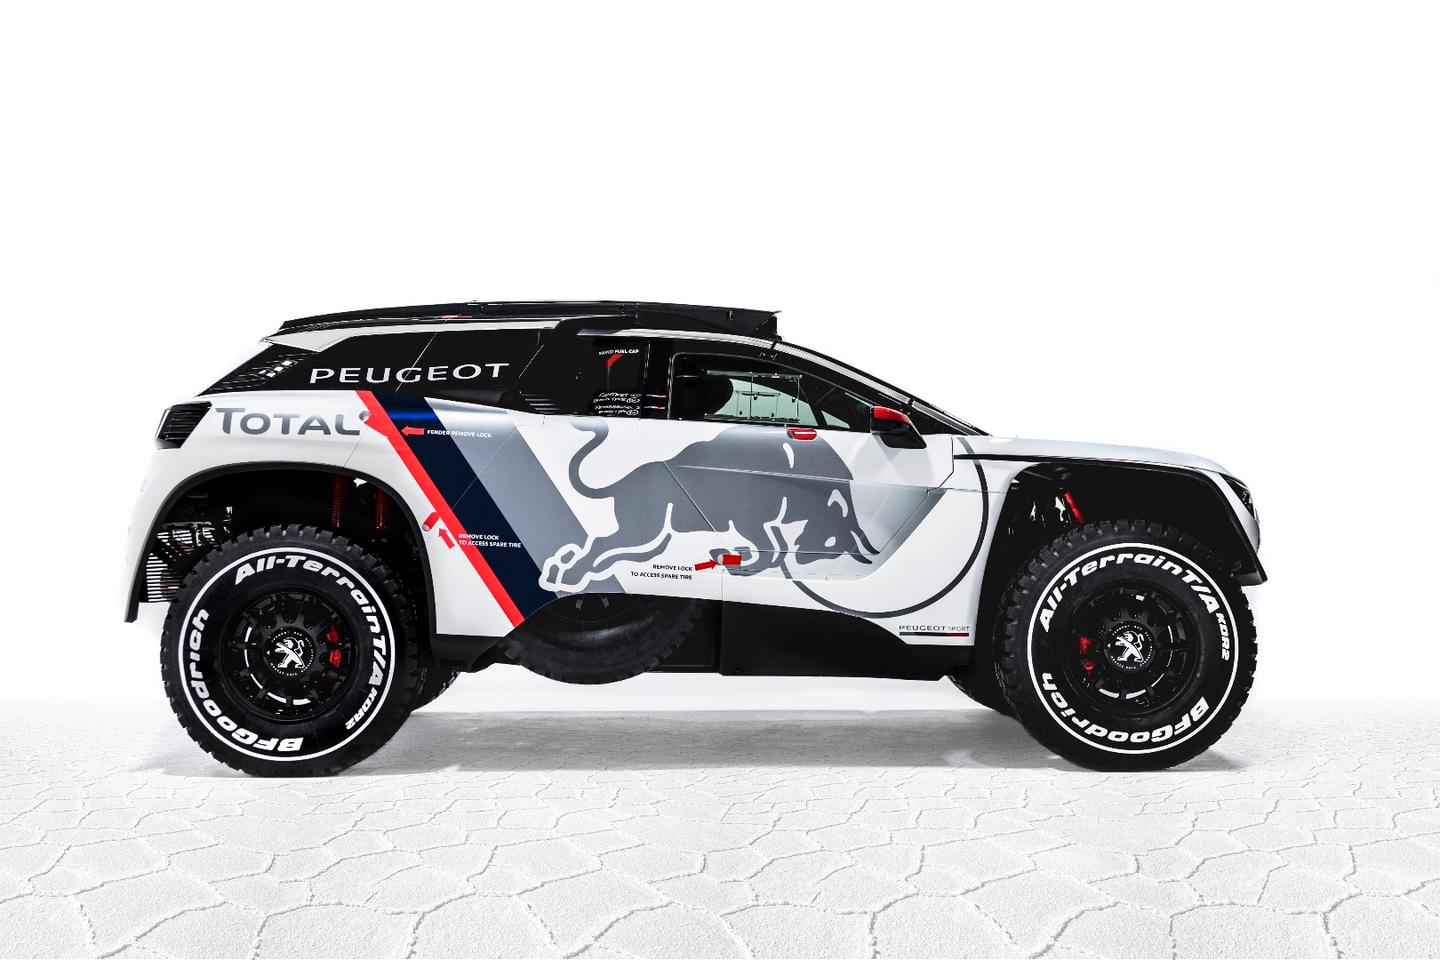 Peugeot Total will give the 3008 DKR its first official competitive test next month